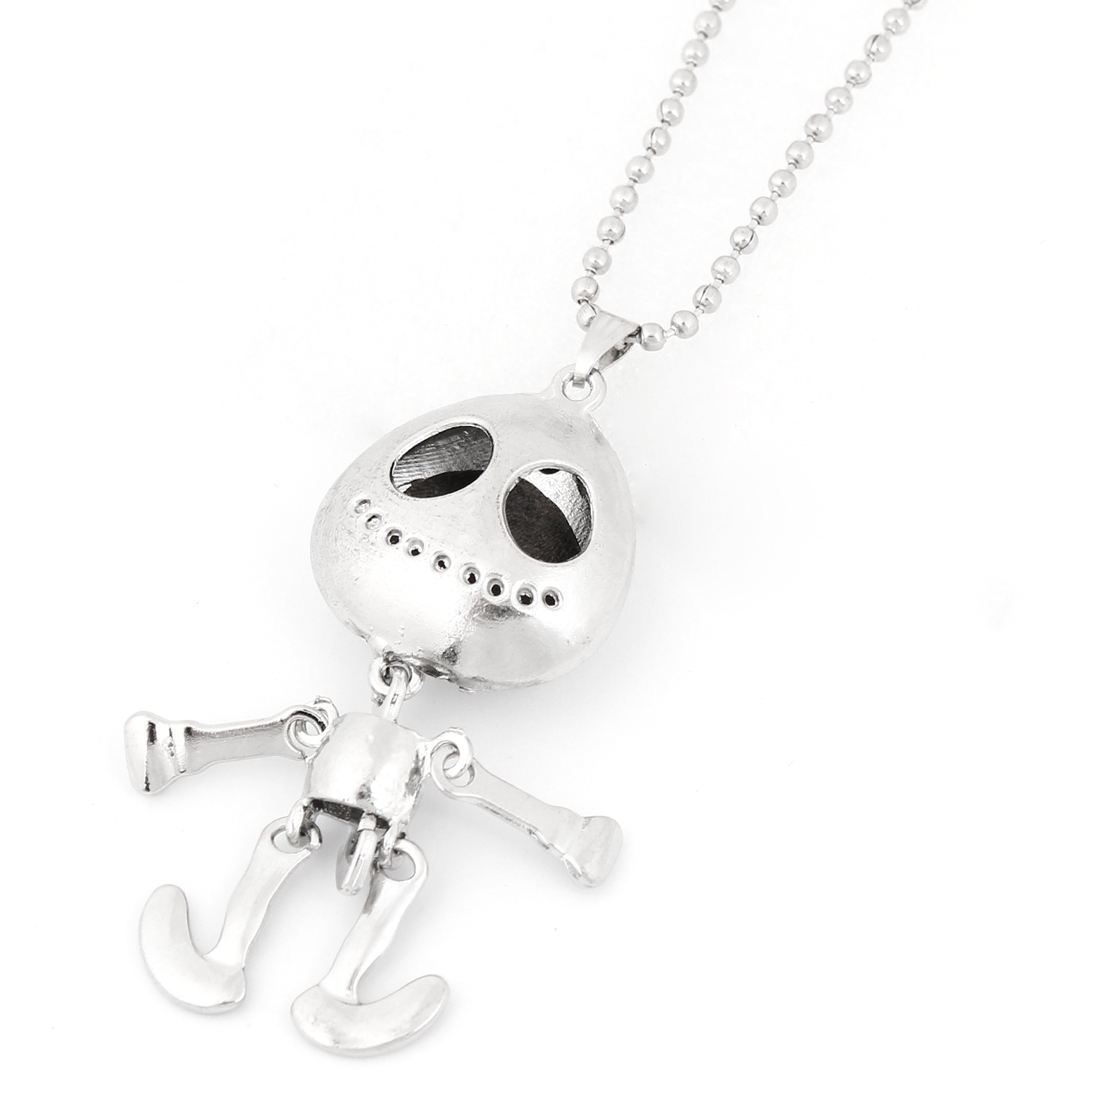 Silver Tone Skull Pendant Necklace Sweater Chain for Lady